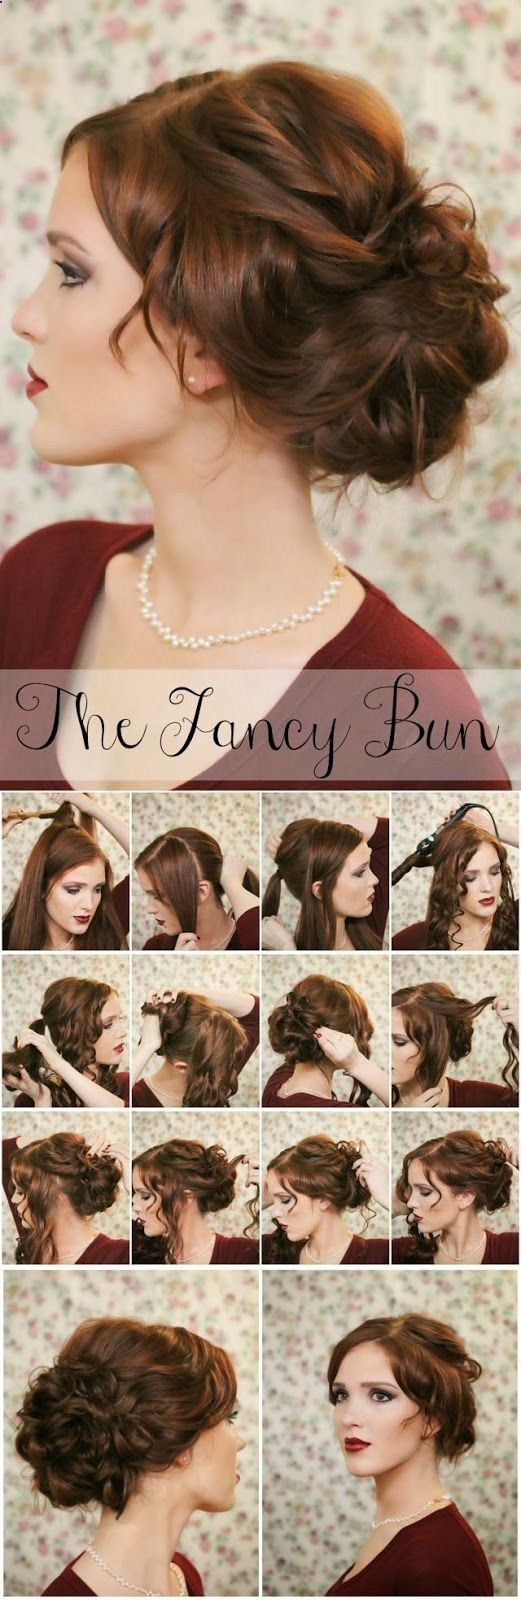 Easy Simple Knotted Bun Updo Hairstyle Tutorials :Wedding Hairstyle | Haircuts Hairstyles for short long medium hair